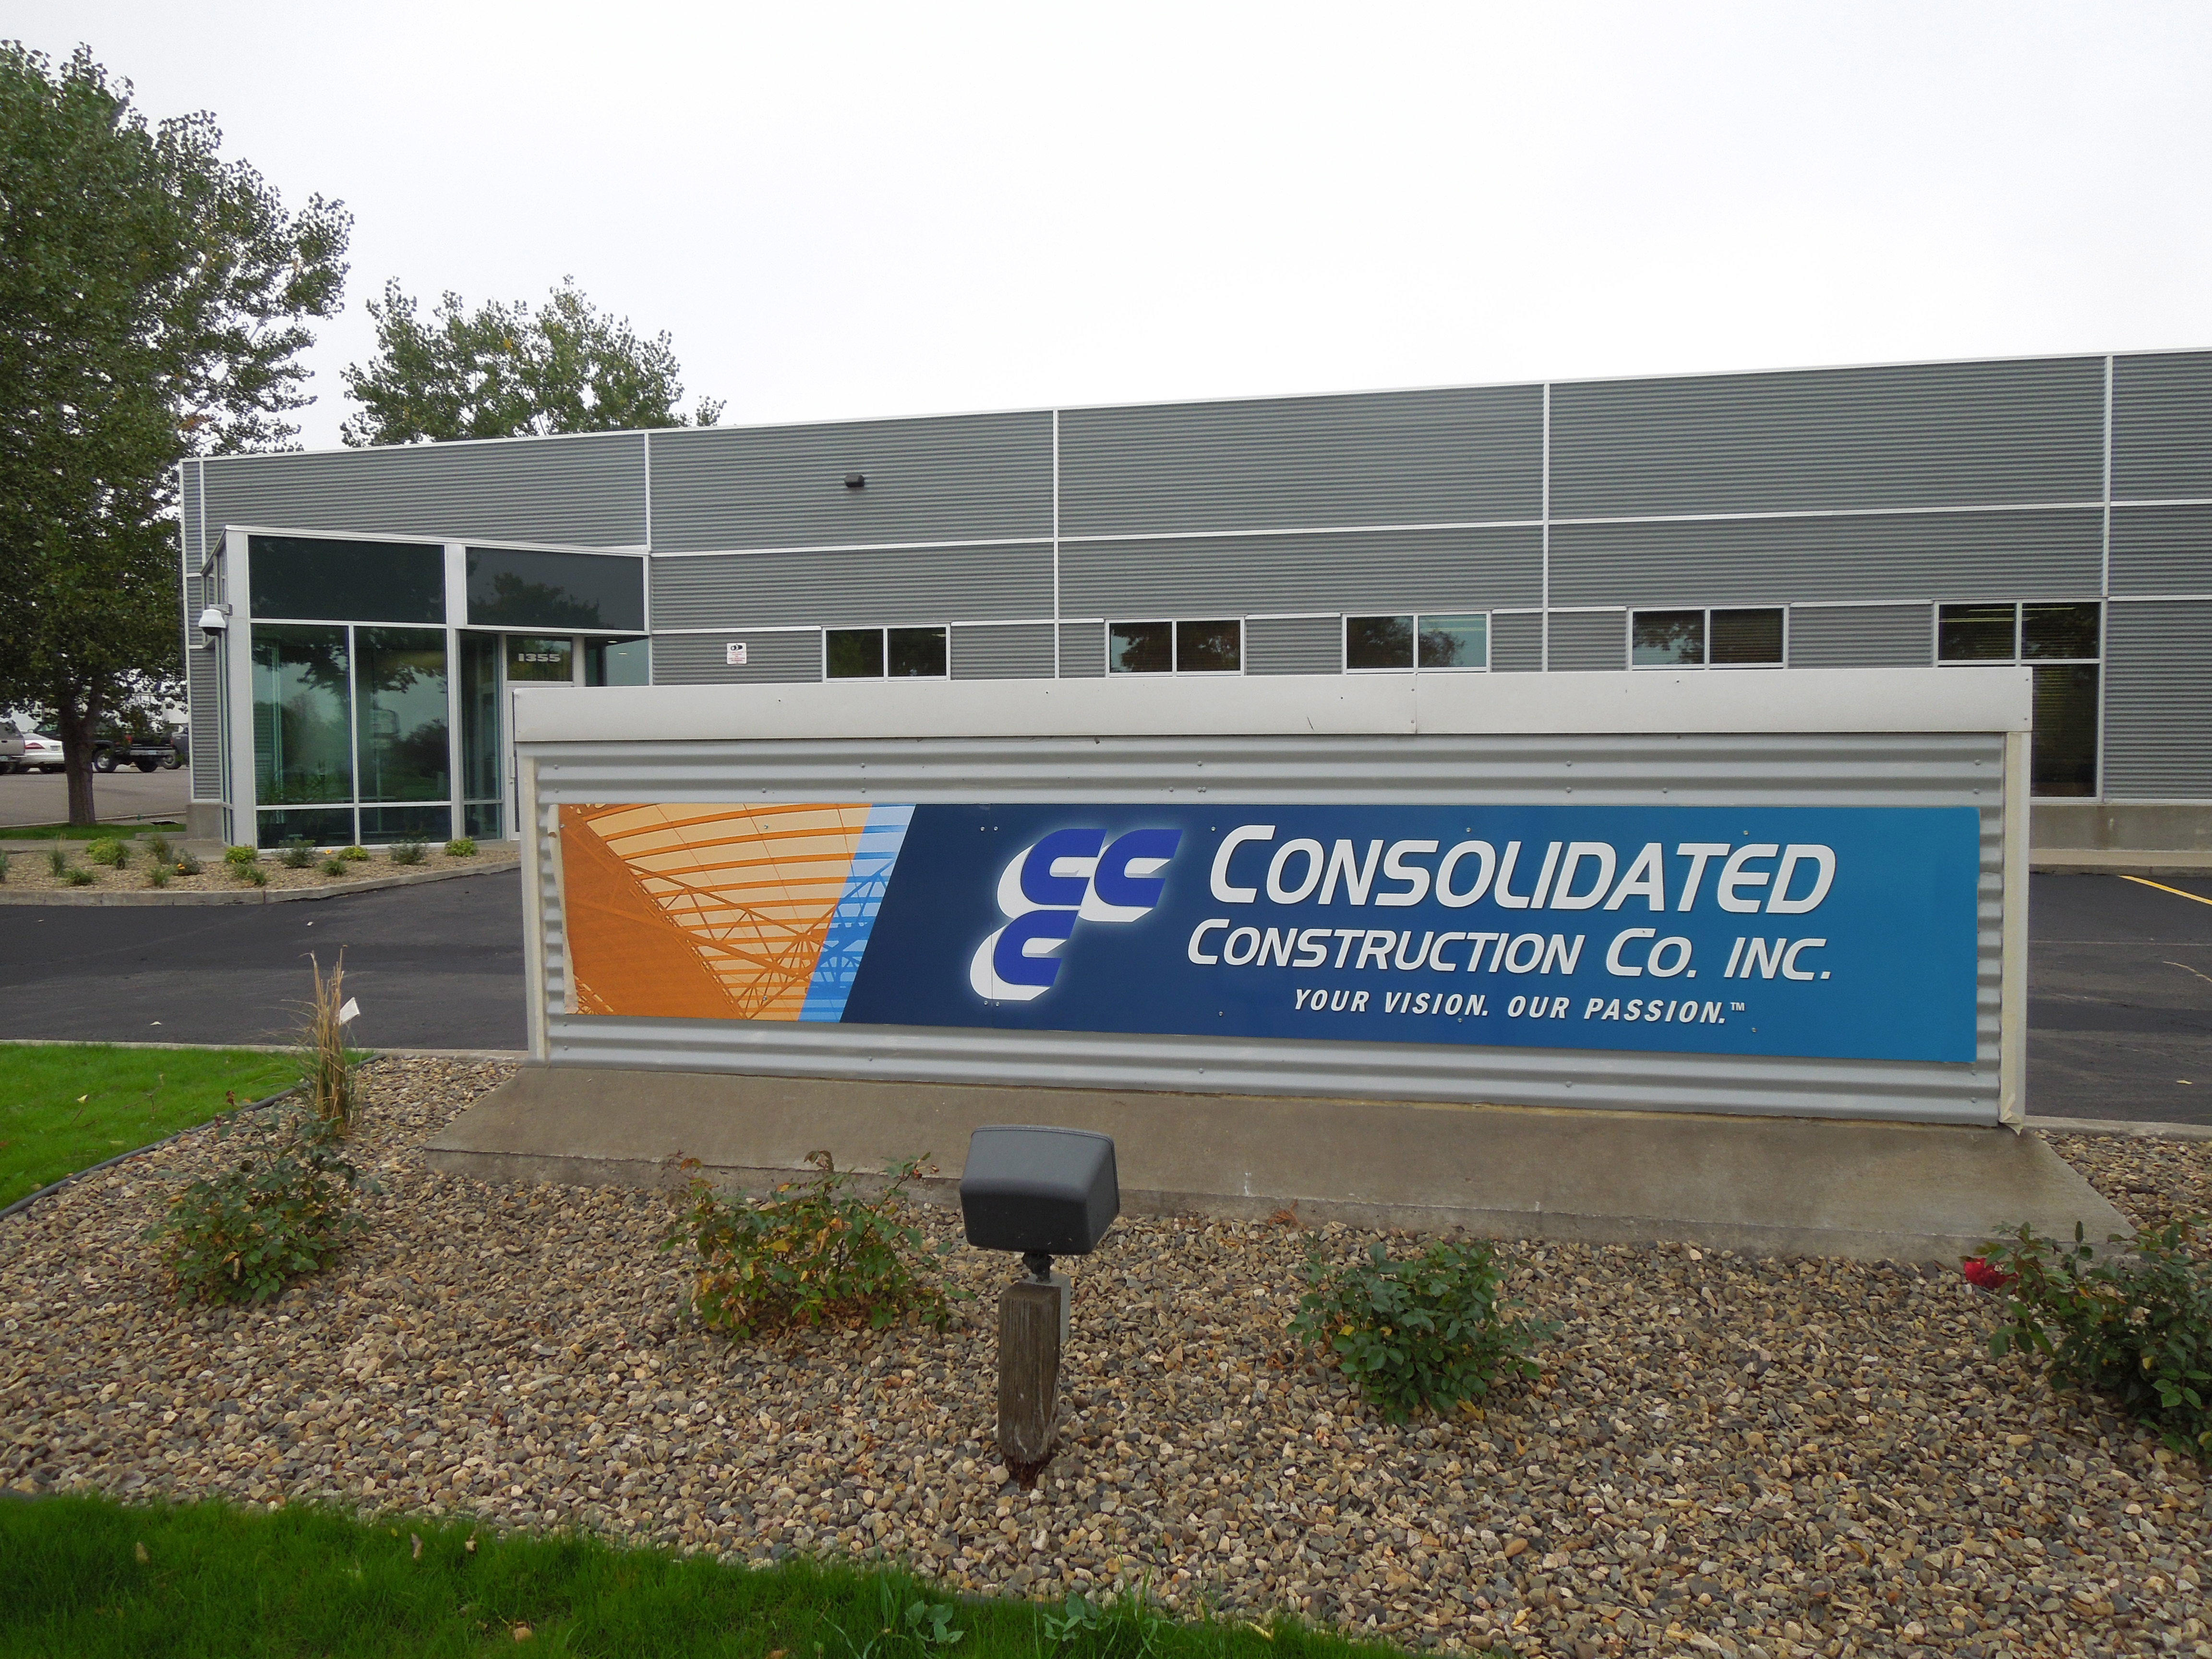 Consolidated Construction Company Inc image 1